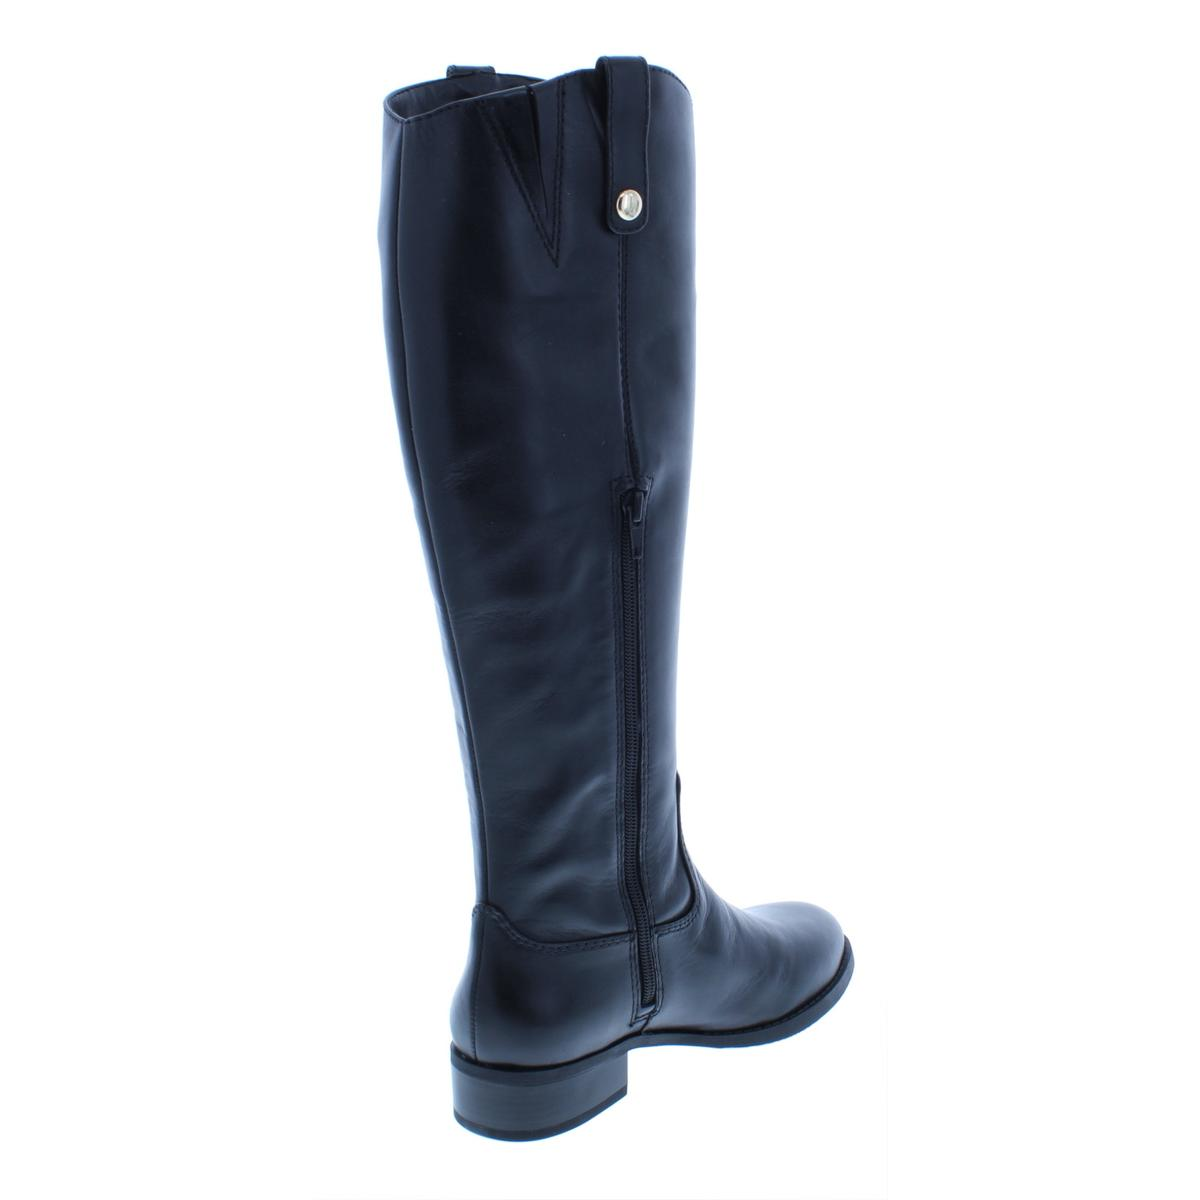 INC-Womens-Fawne-Leather-Knee-High-Tall-Riding-Boots-Shoes-BHFO-5020 thumbnail 4